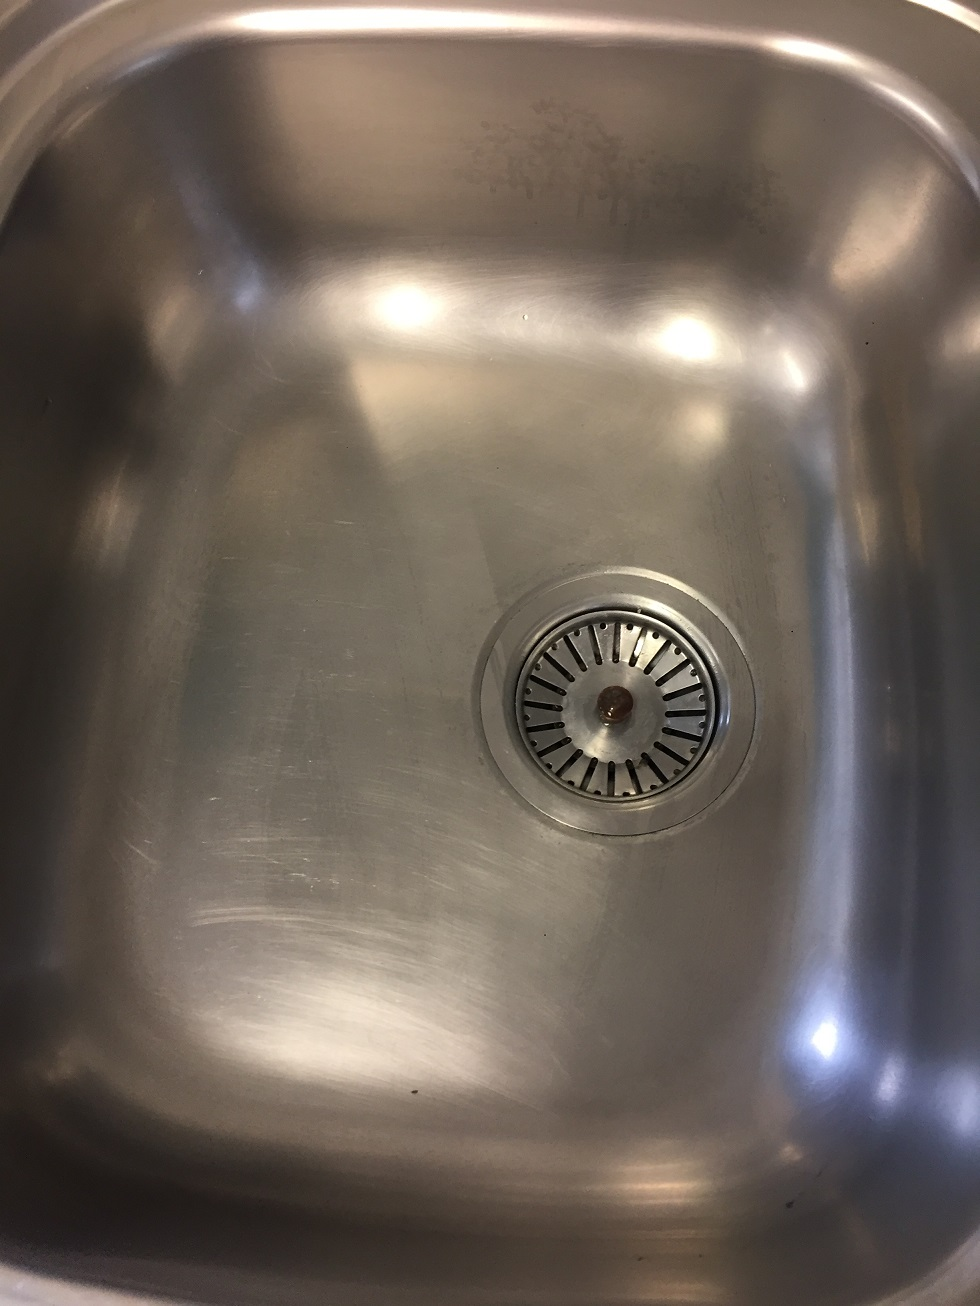 Sink Descaled